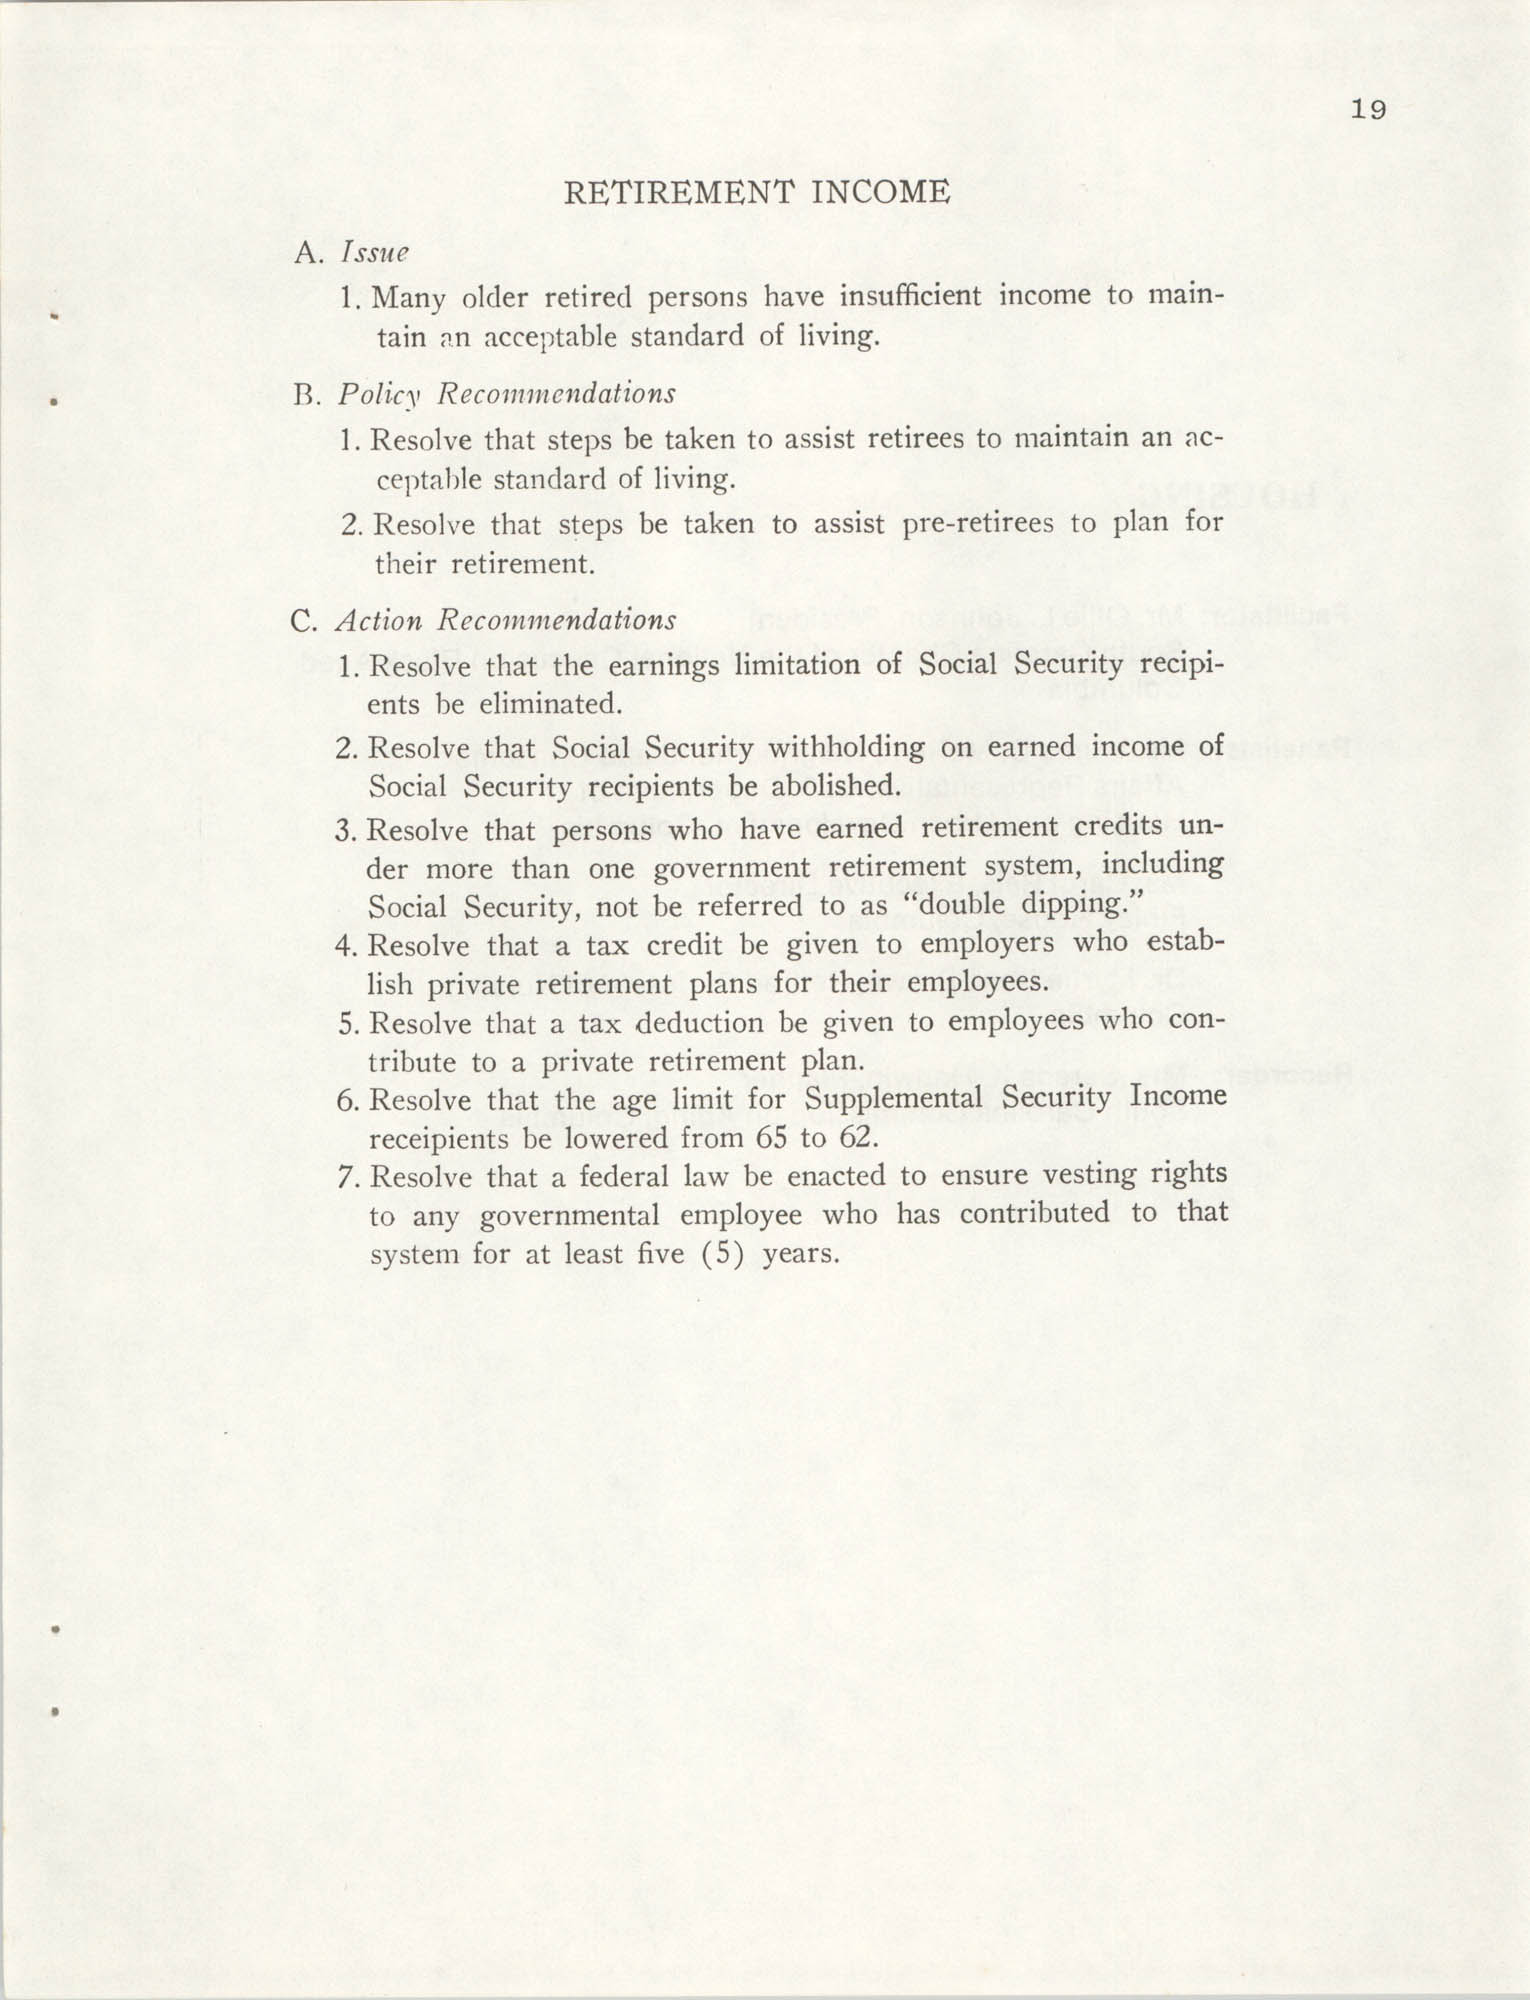 South Carolina Governor's White House Conference on Aging Proceedings, 1981, Page 19